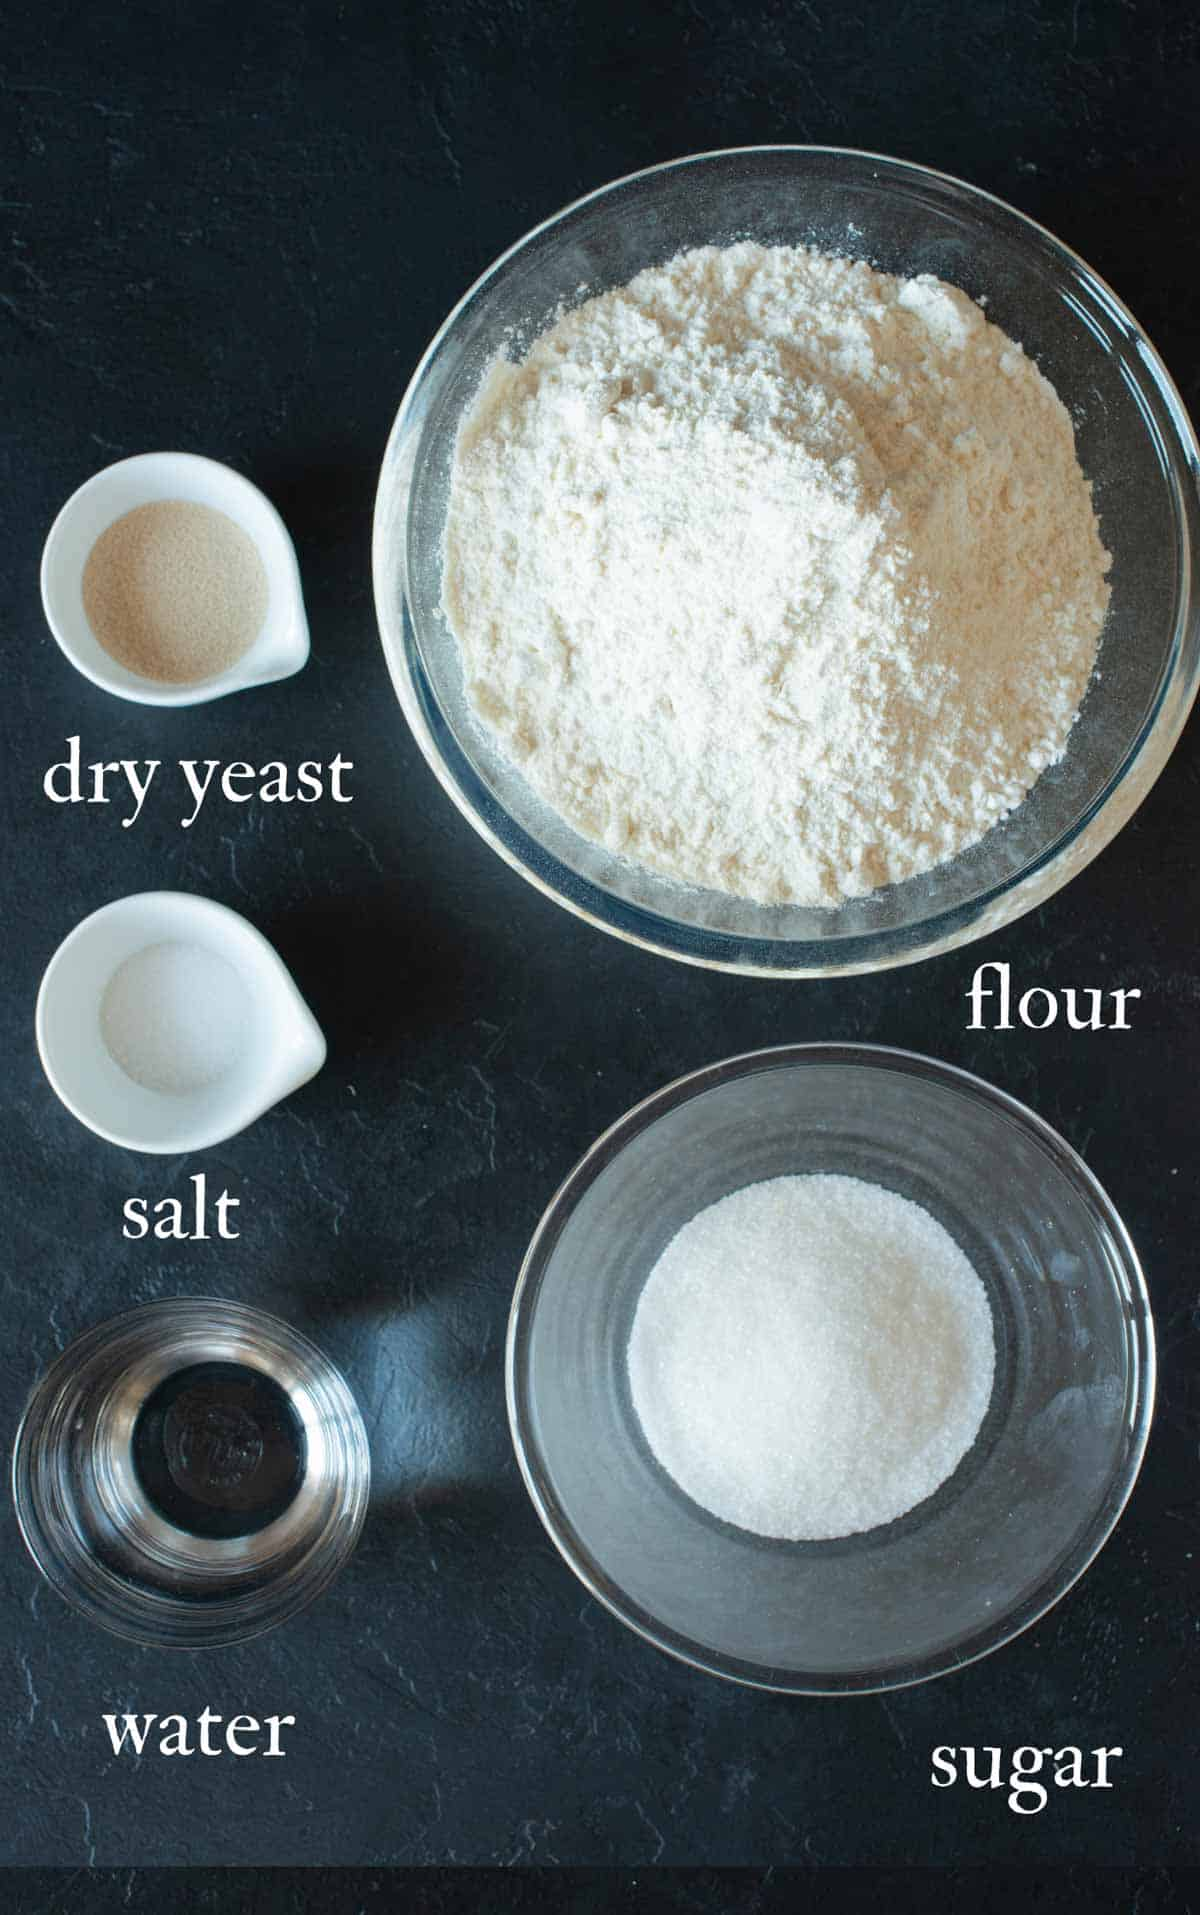 Image of  the ingredients needed for the croissants: yeast, flour, water, salt and sugar.